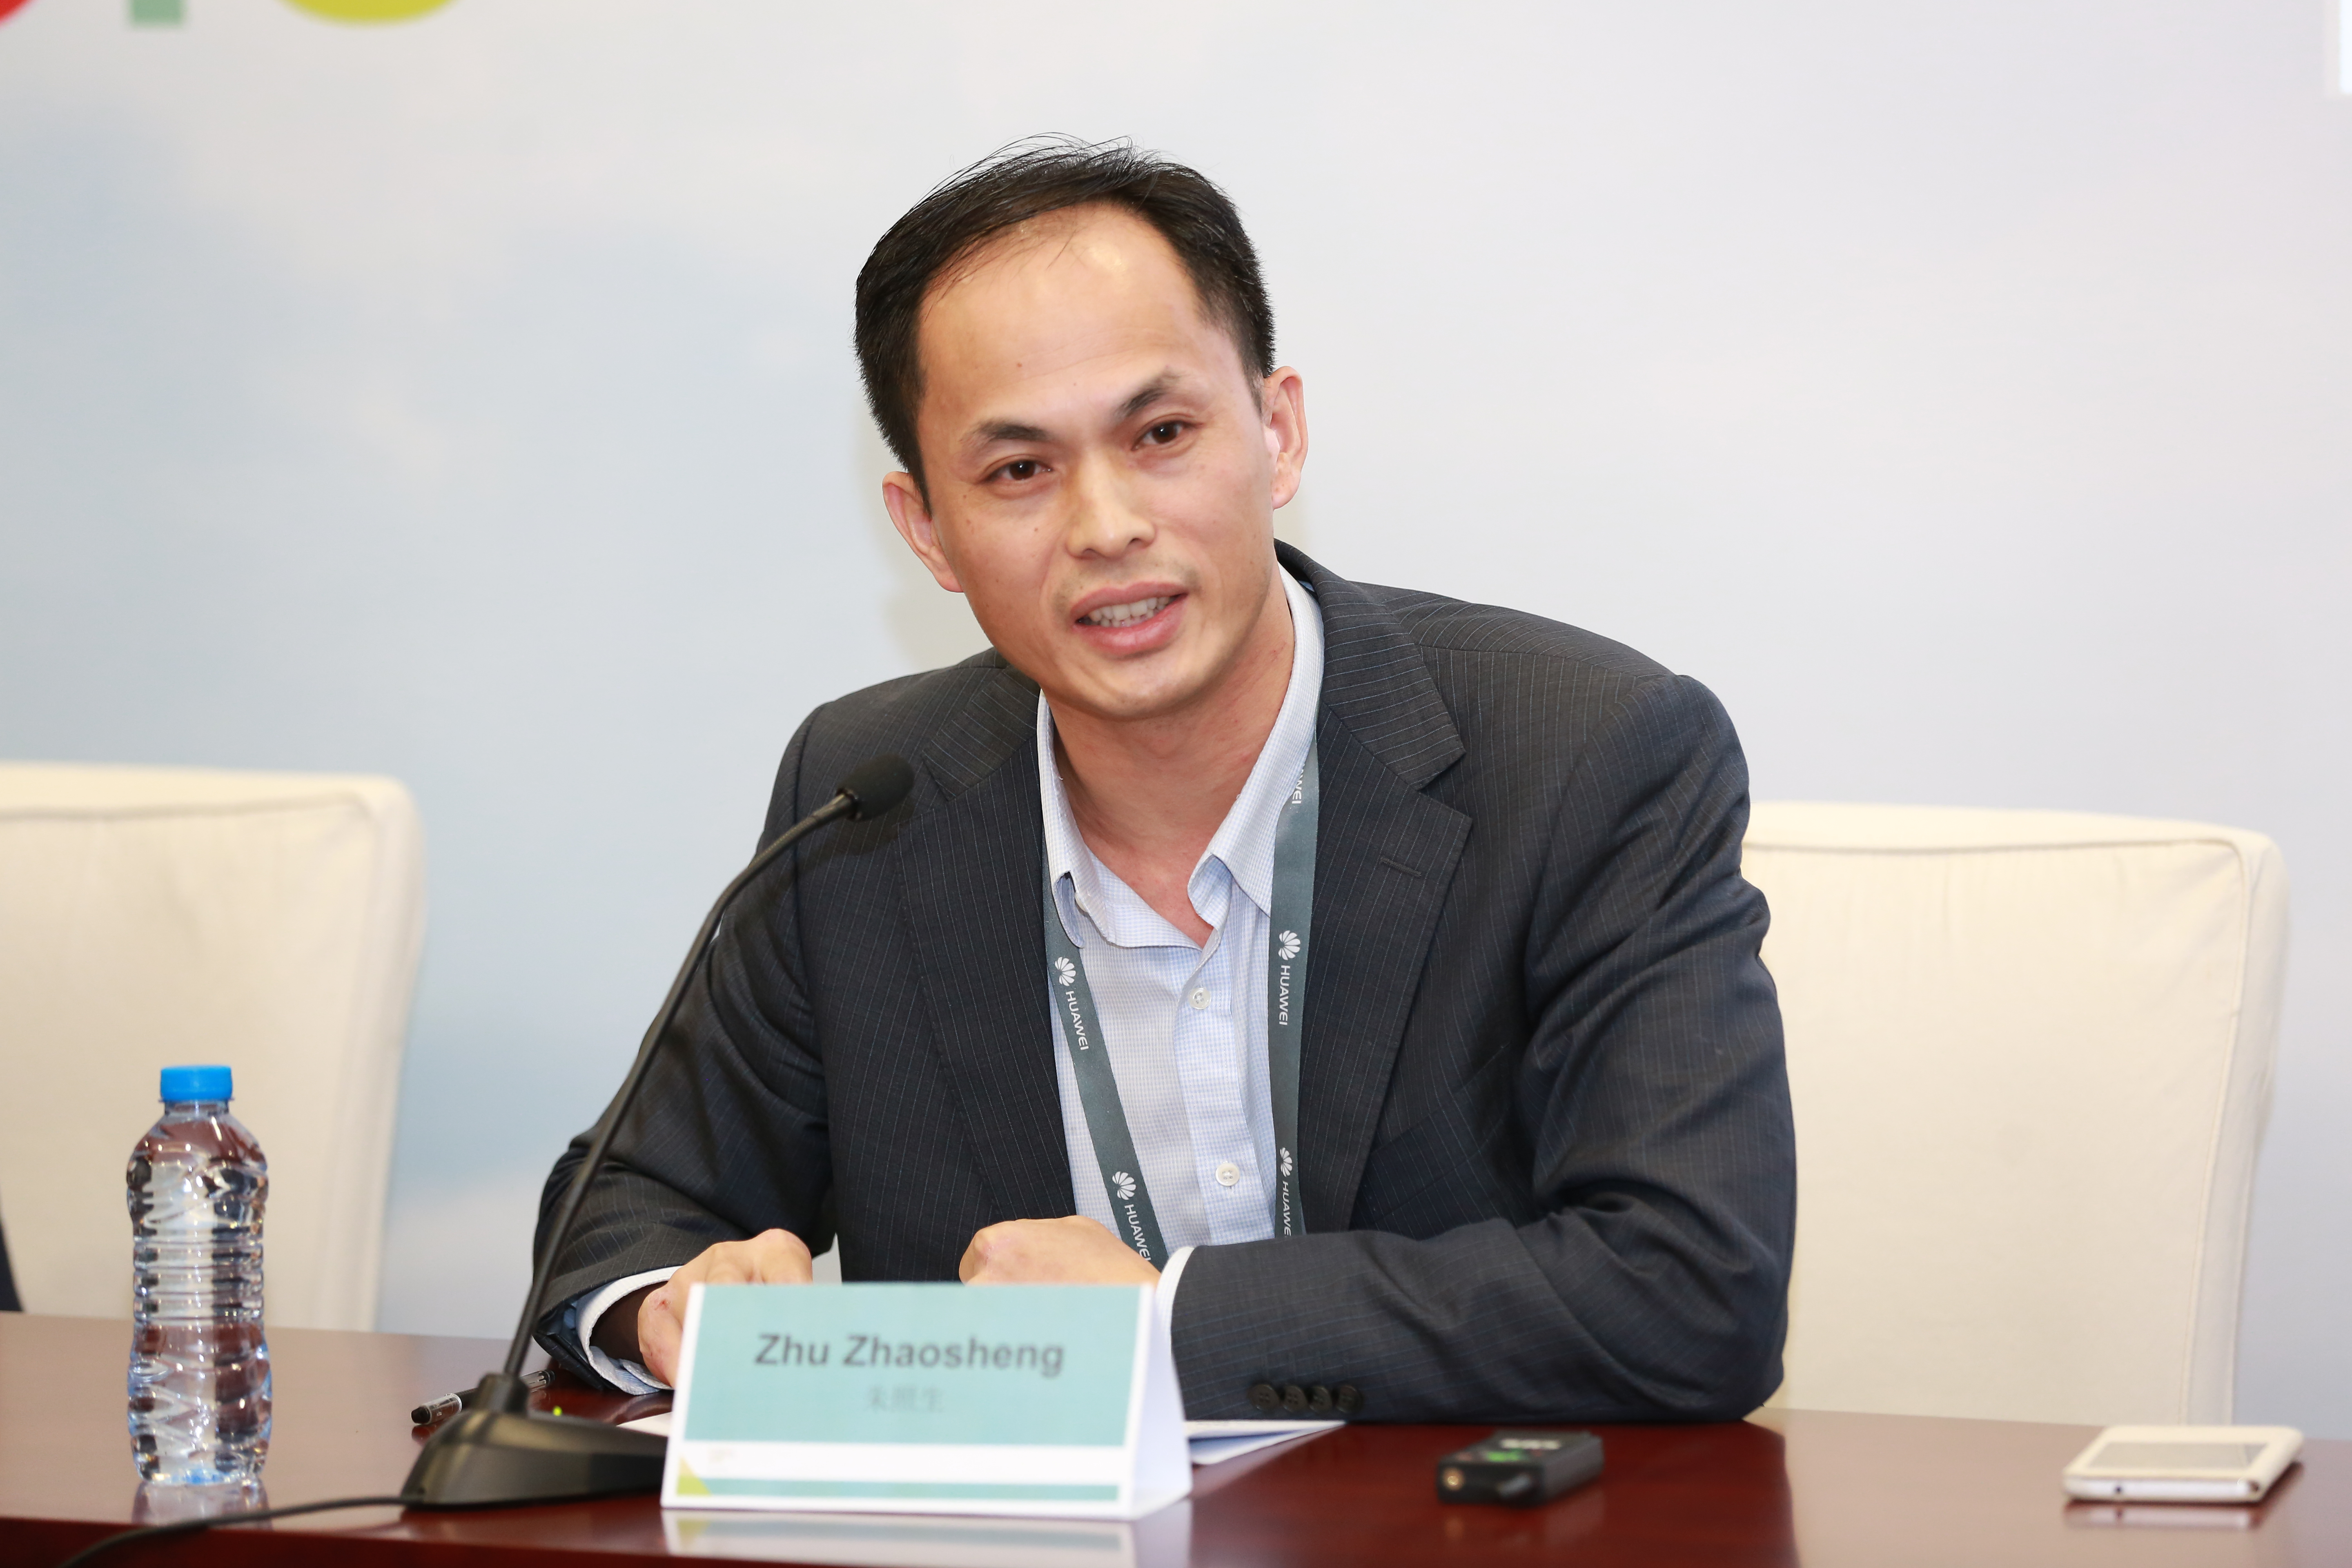 Zhu Zhaosheng, general manager of the Huawei FusionInsight Big Data Platform